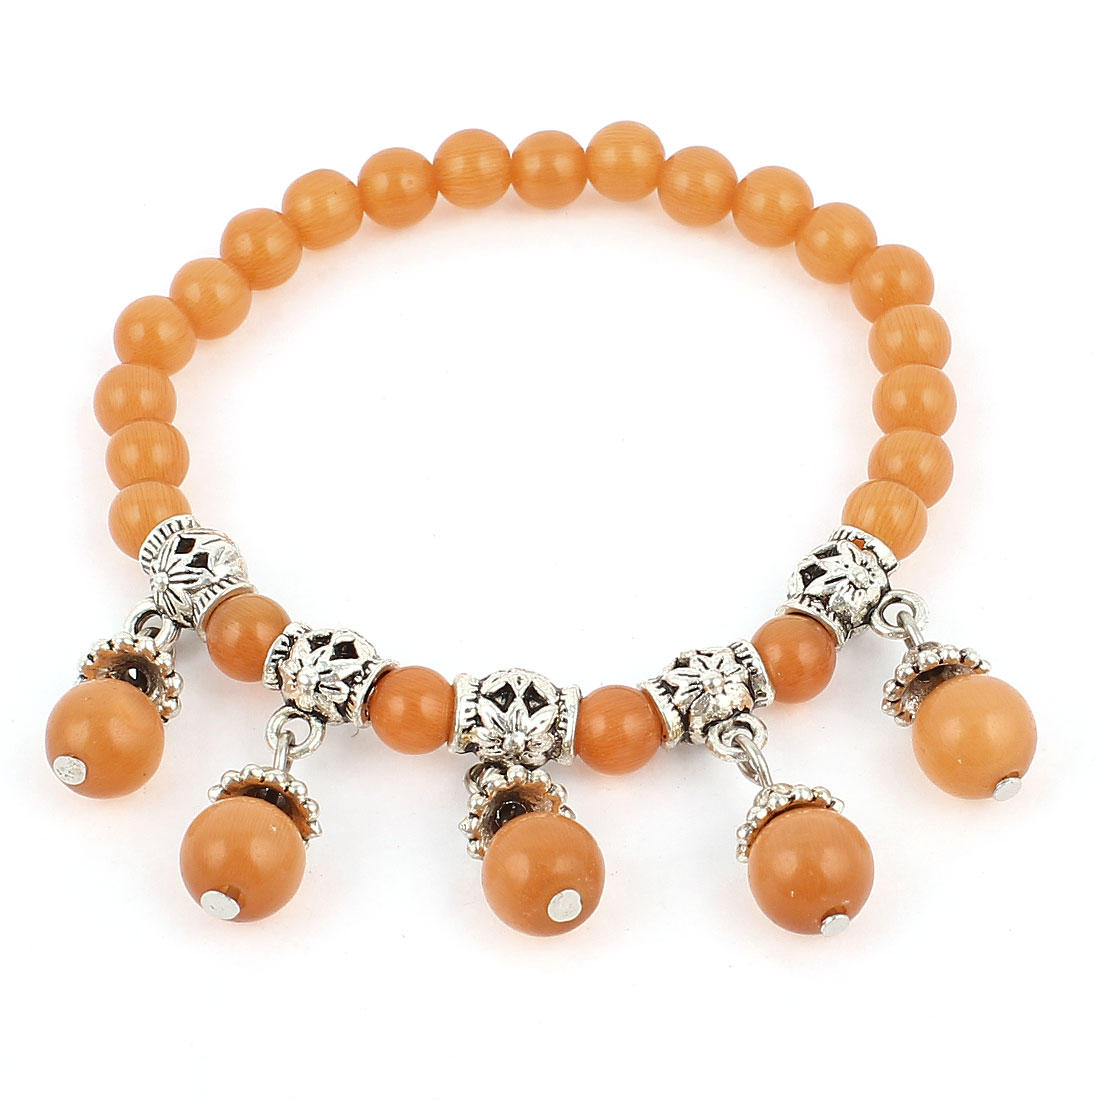 Opal Bead Lady Manmade Faceted Tibetian Orange Silver Tone Decor Stretchy Bracelet